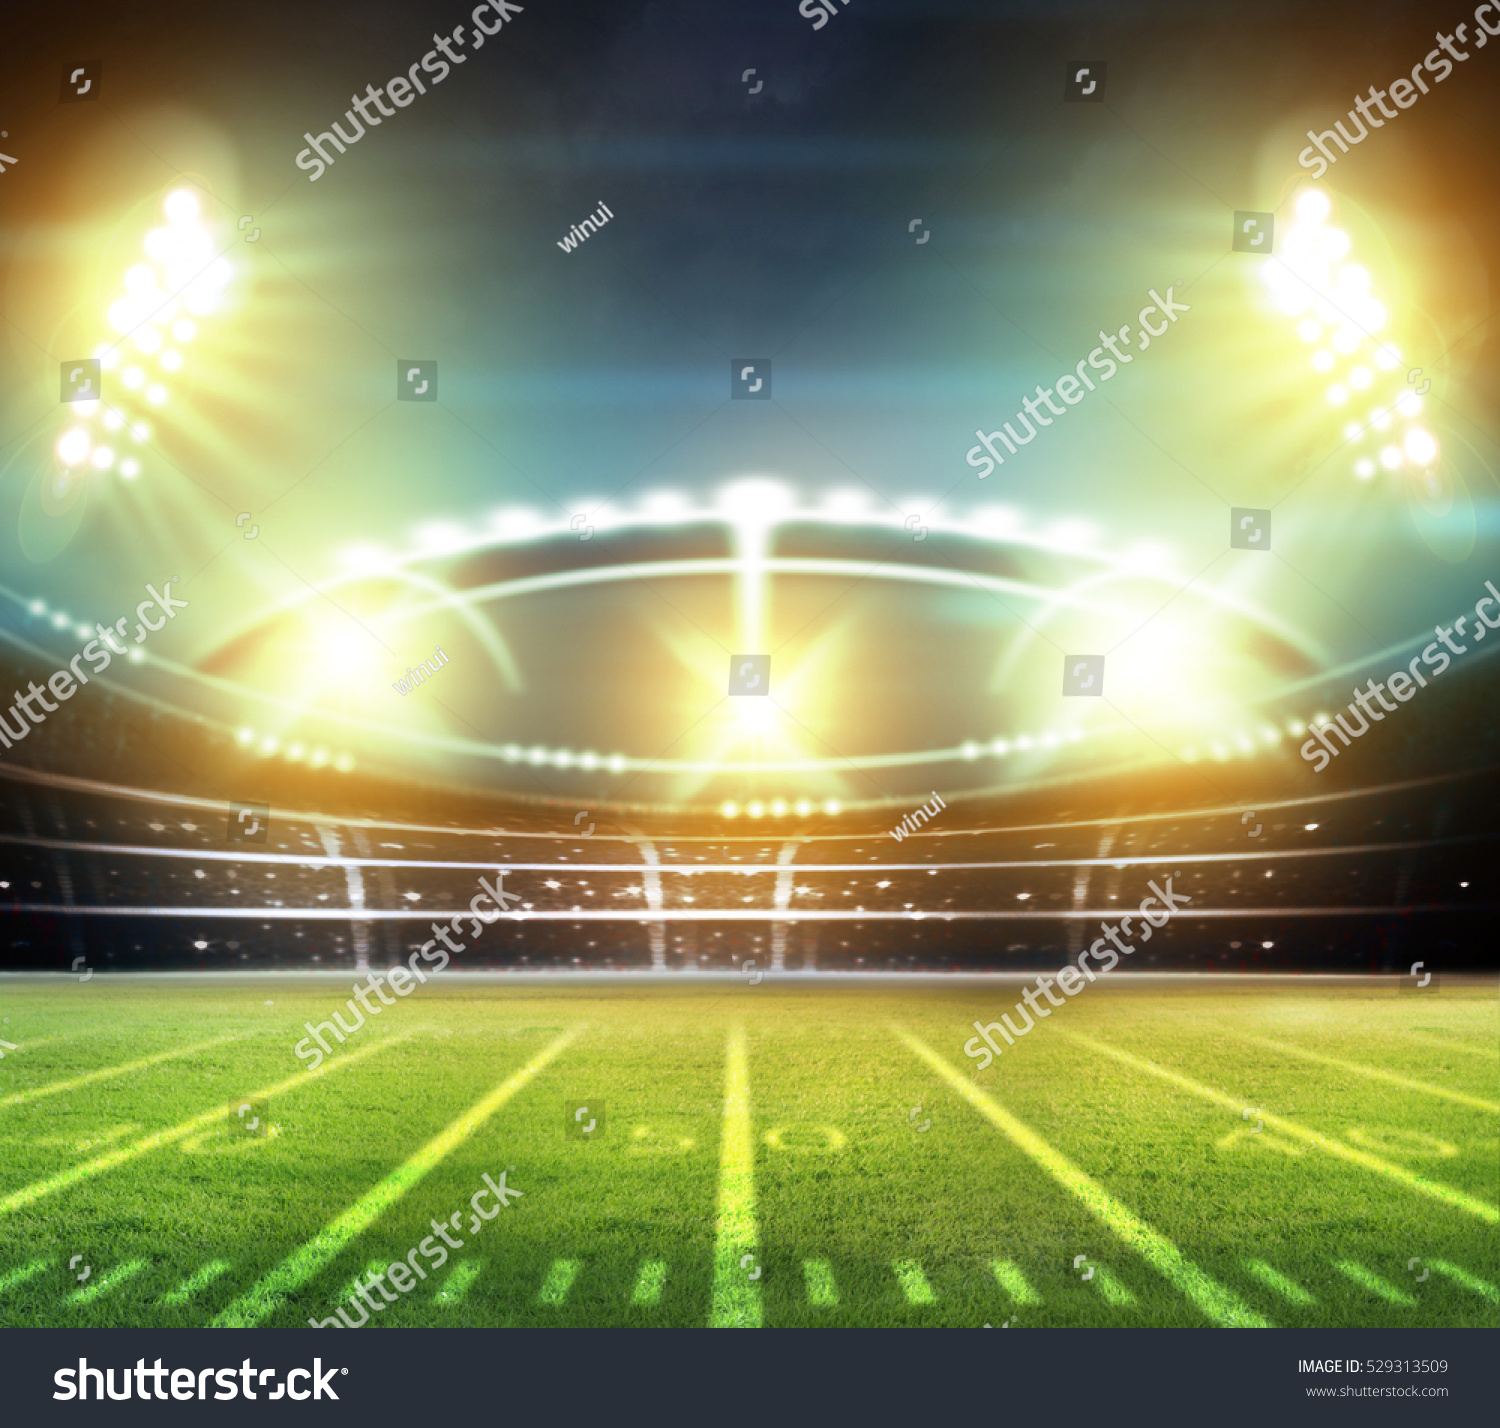 Football Stadium Night Lights: Stadium Lights At Night And Stadium 3d Stock Photo